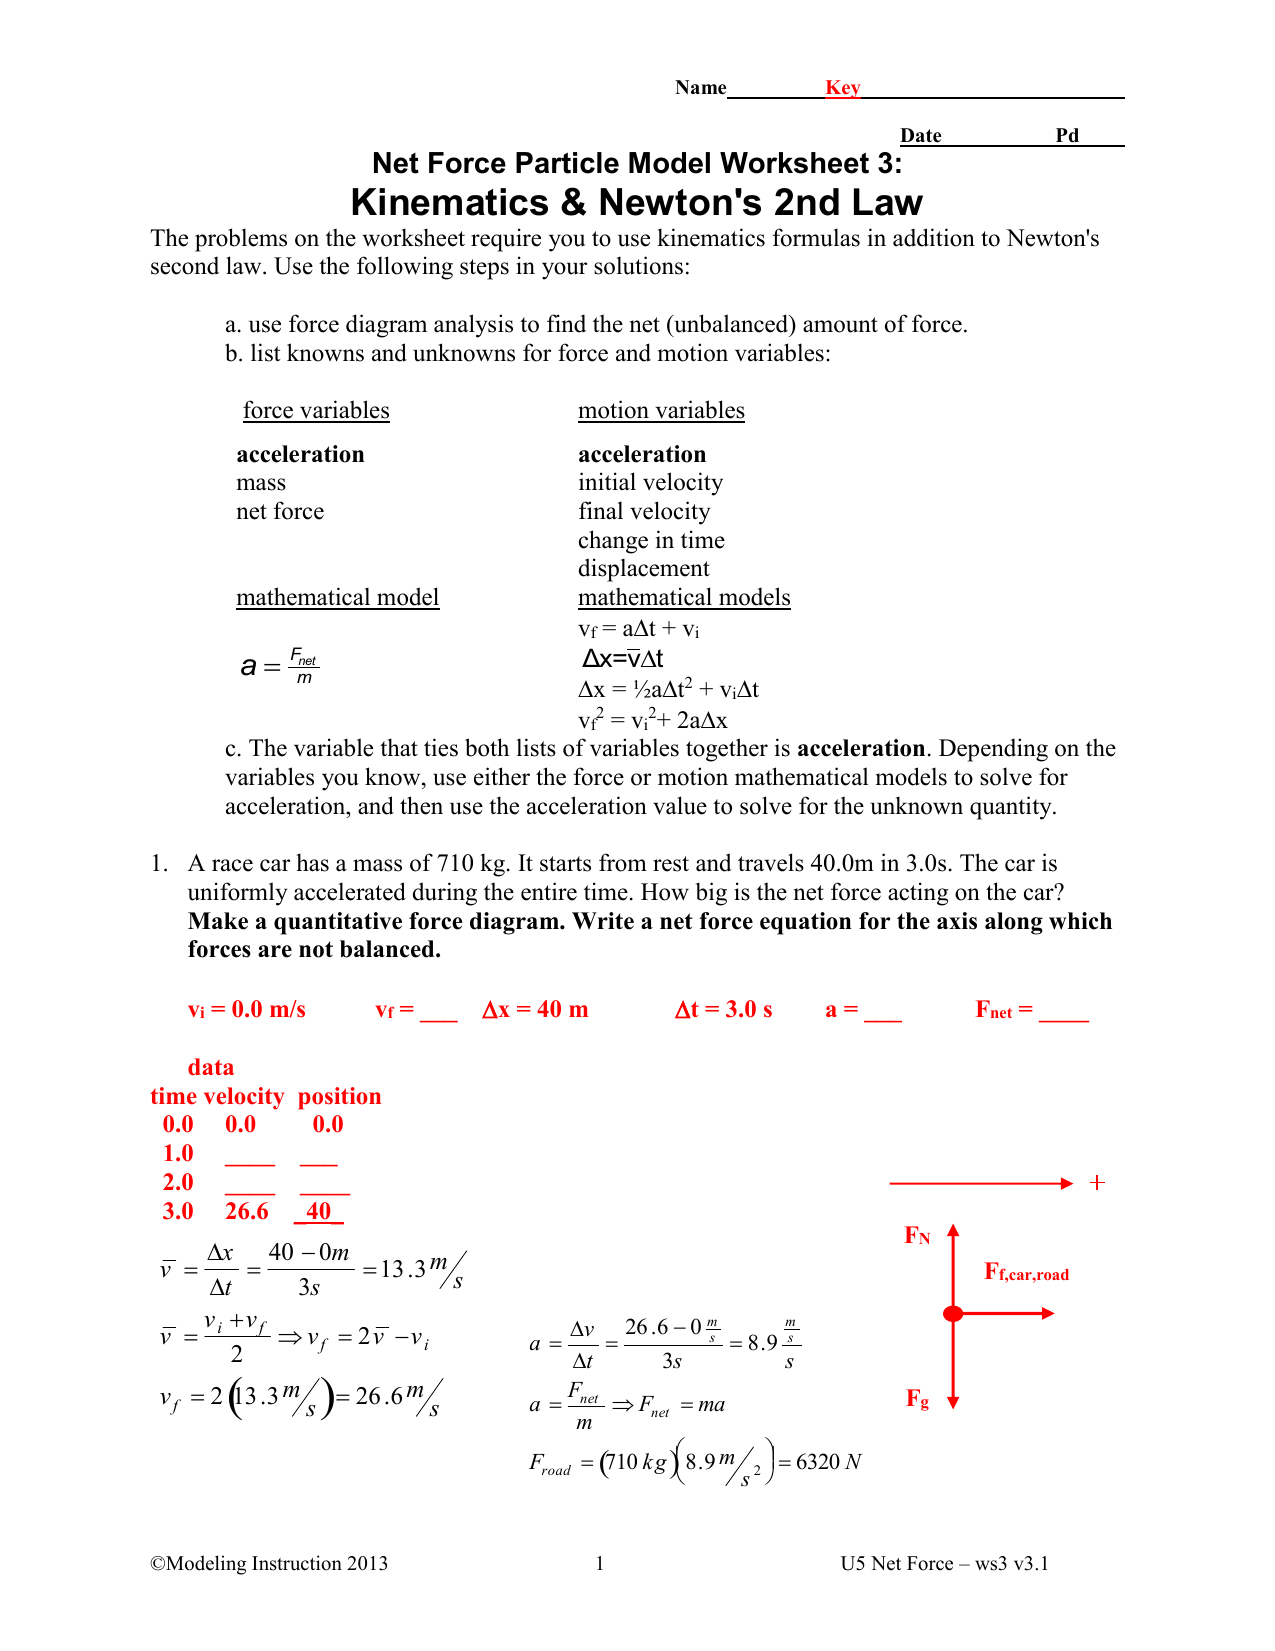 Kinematics And Newtons 2nd Law Key